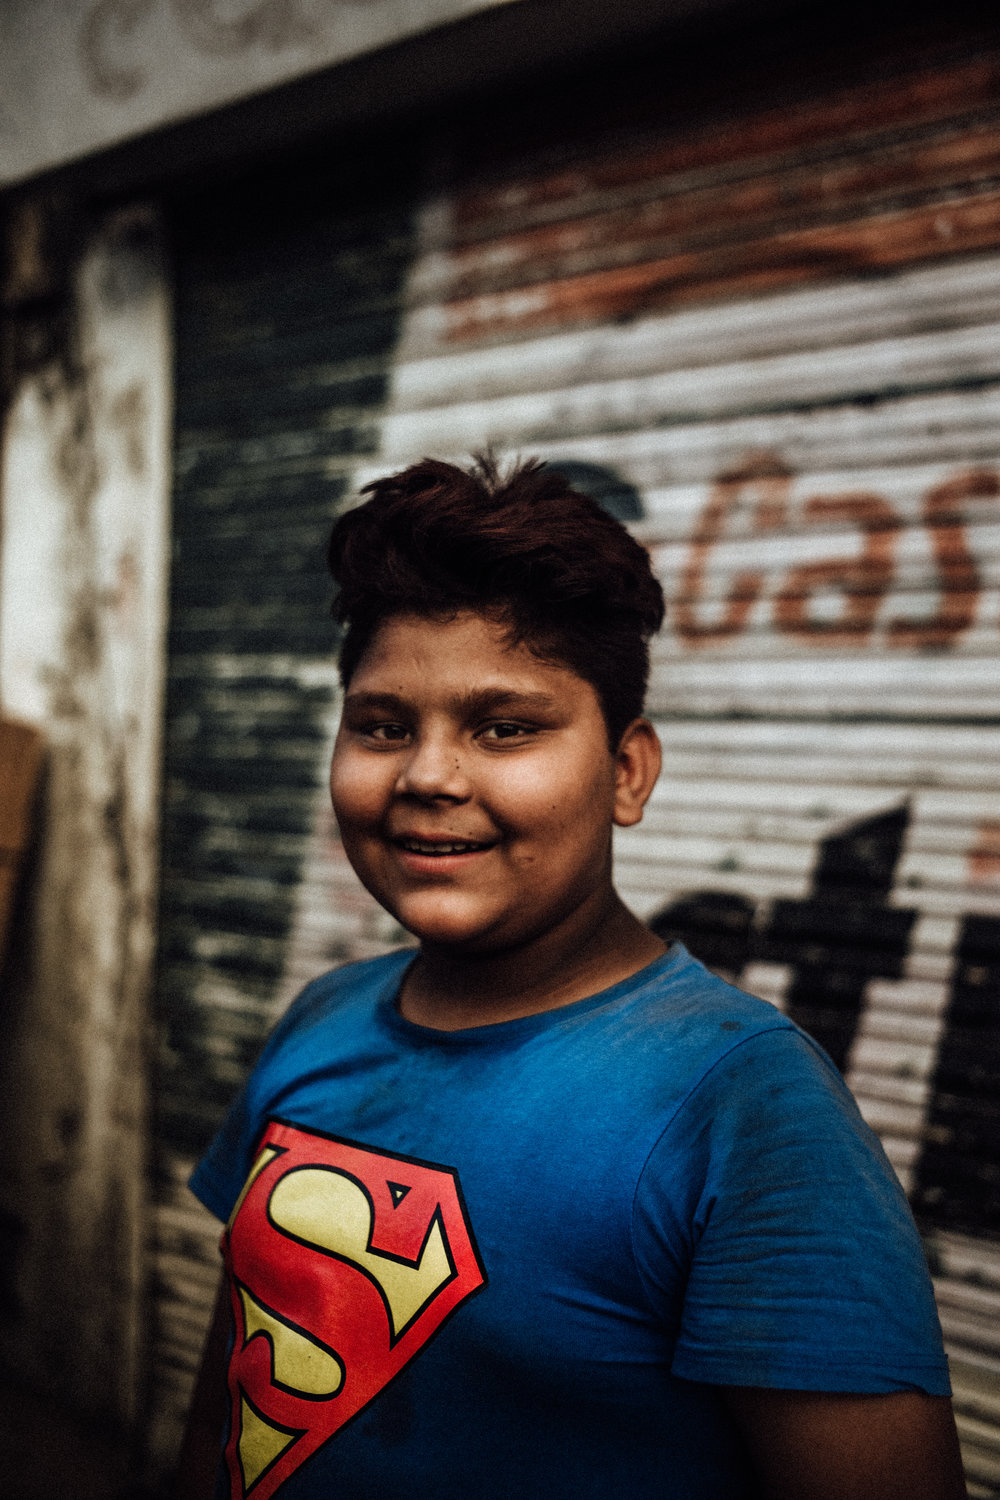 With everything that's going on in the world, we could all use a Superman. - Jaipur, Rajasthan 2017